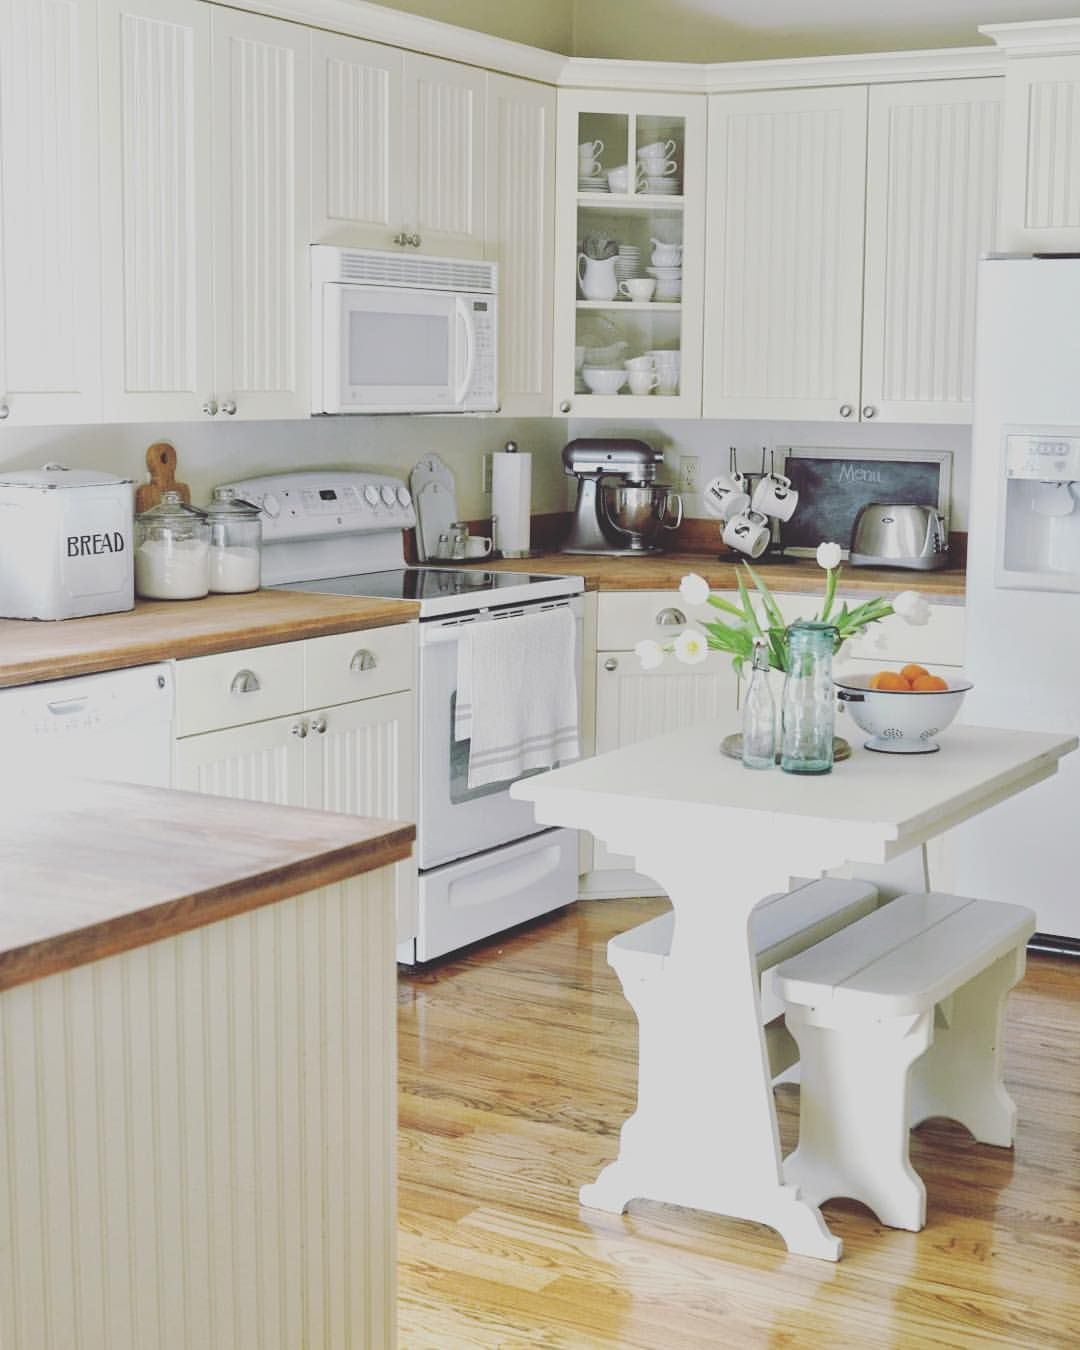 Faded Charm On Instagram These Cabinets In My Kitchen Are In Desperate Need Of A New Coat Of Paint I M Kitchen Remodel New Kitchen Cabinets Kitchen Design